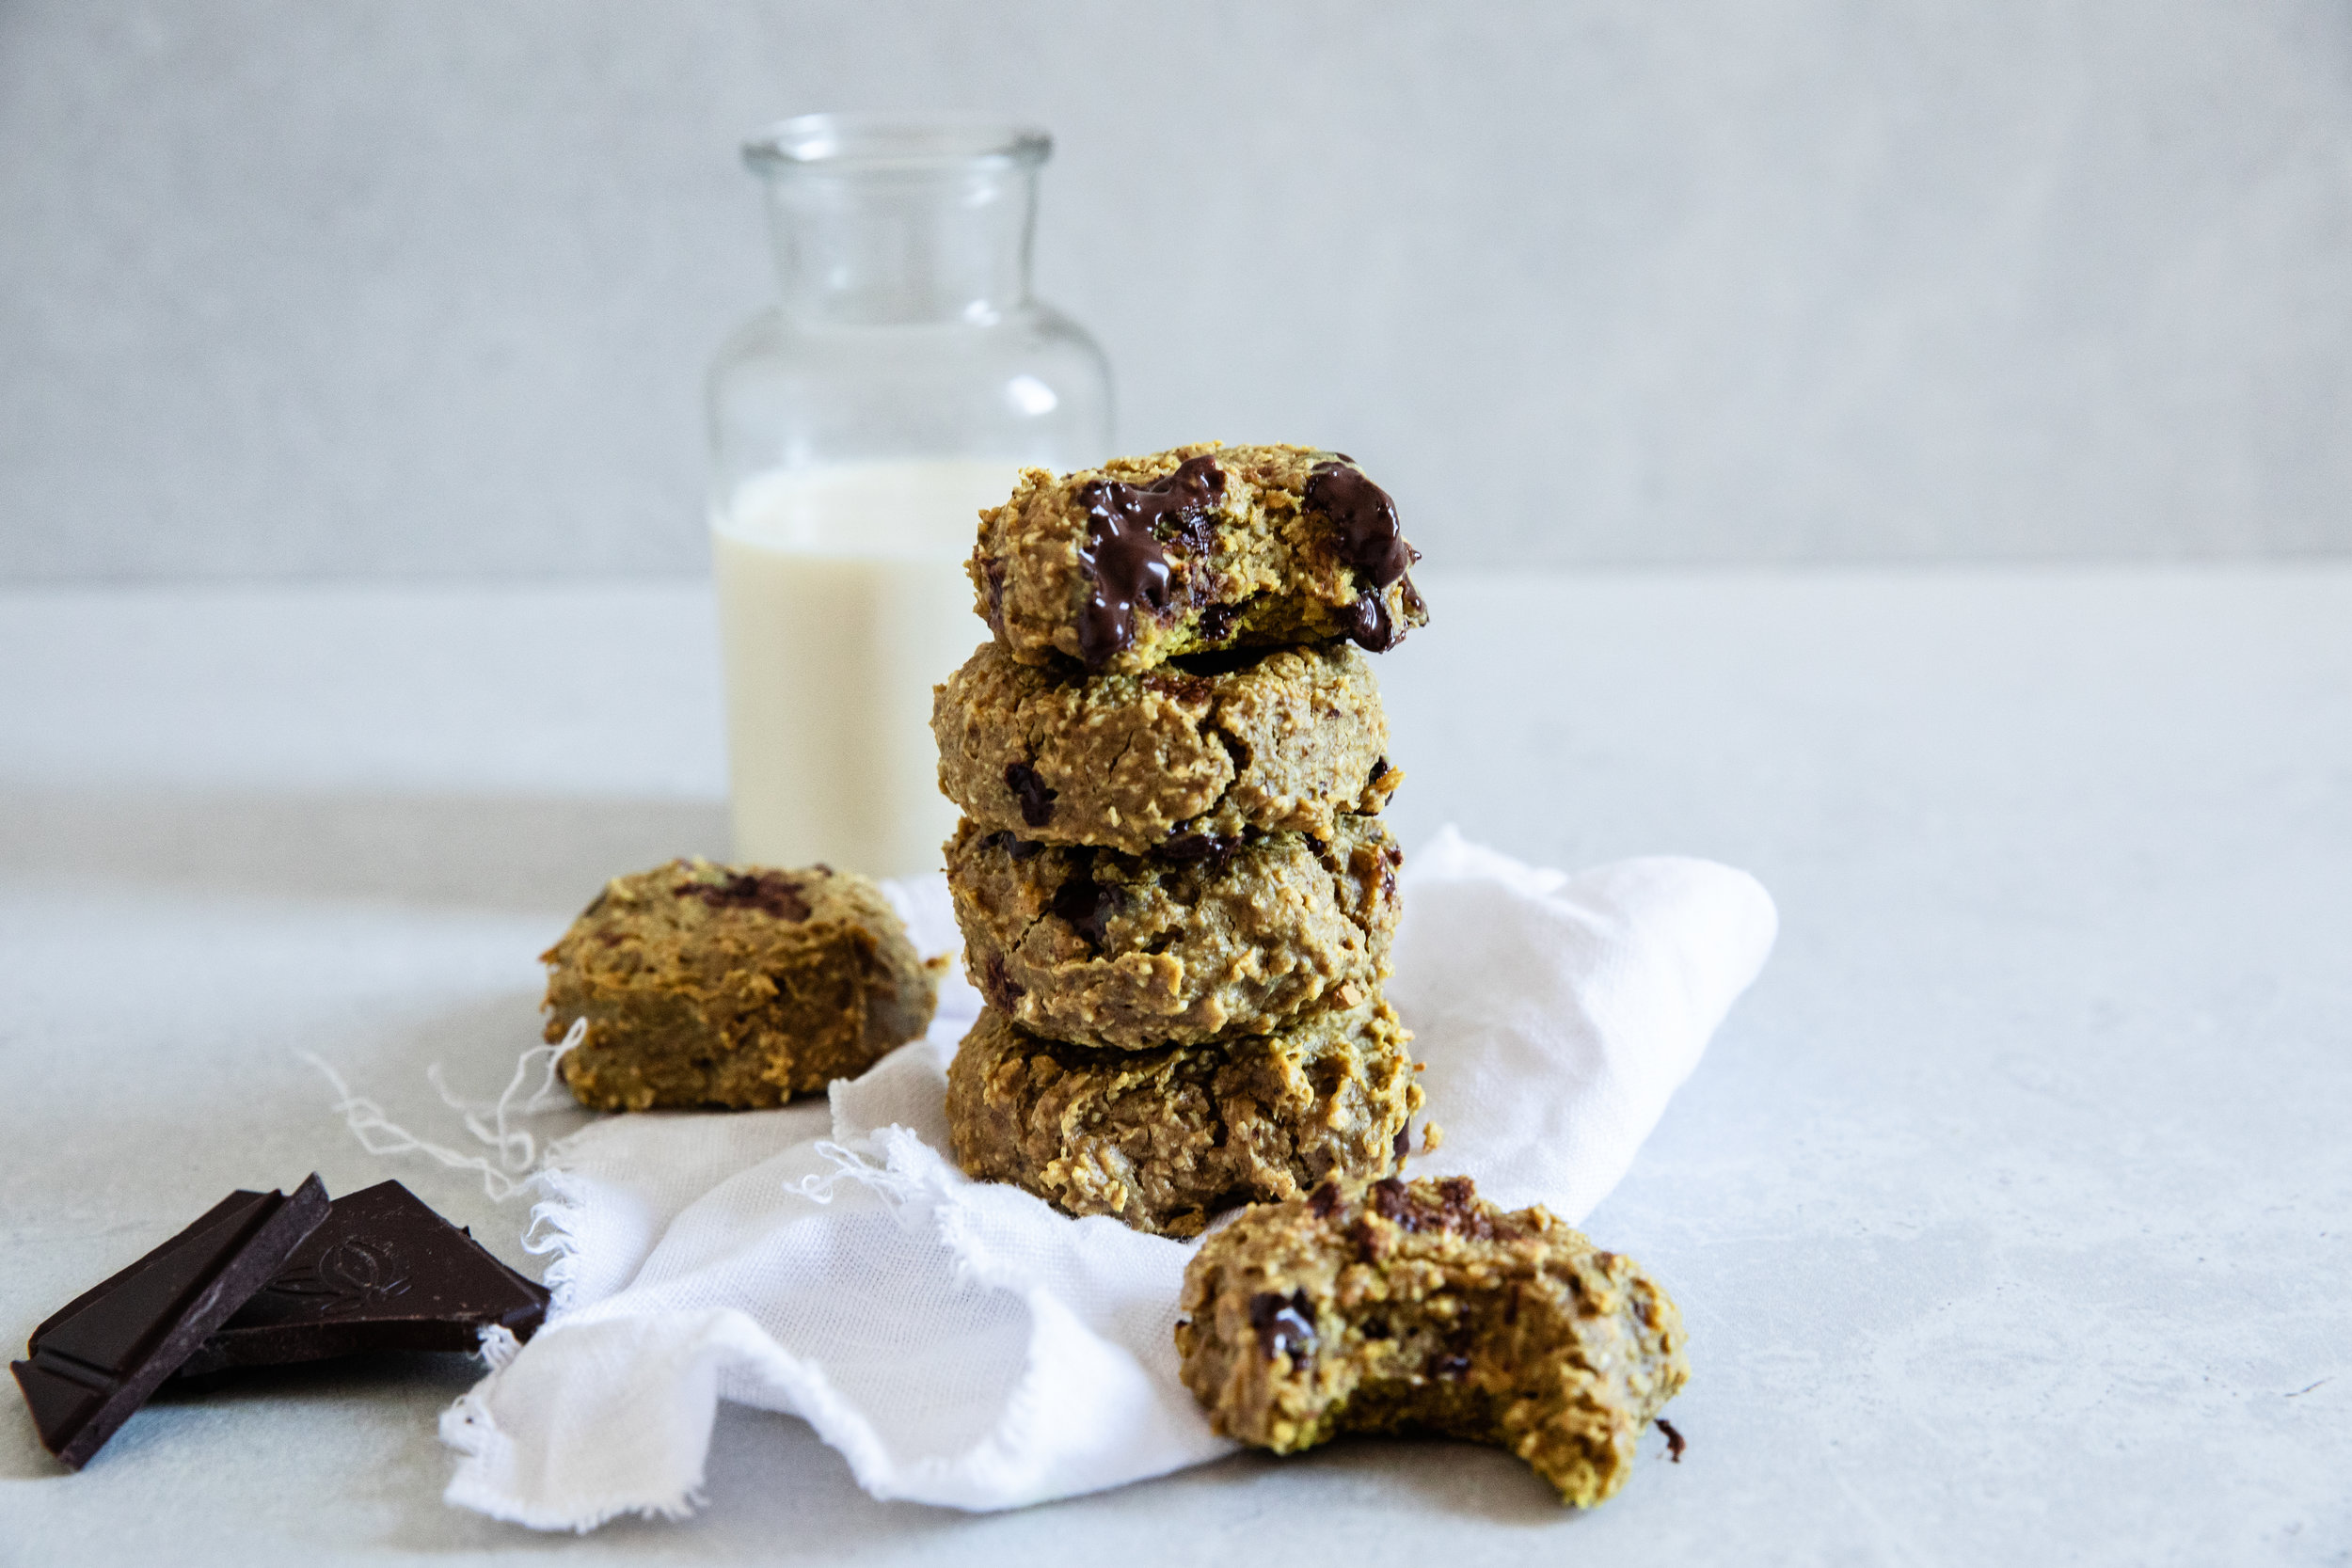 Delicious bites of protein to enjoy as a filling snack - prep time 5-10 mins total time 20-25 mins makes 6 cookies